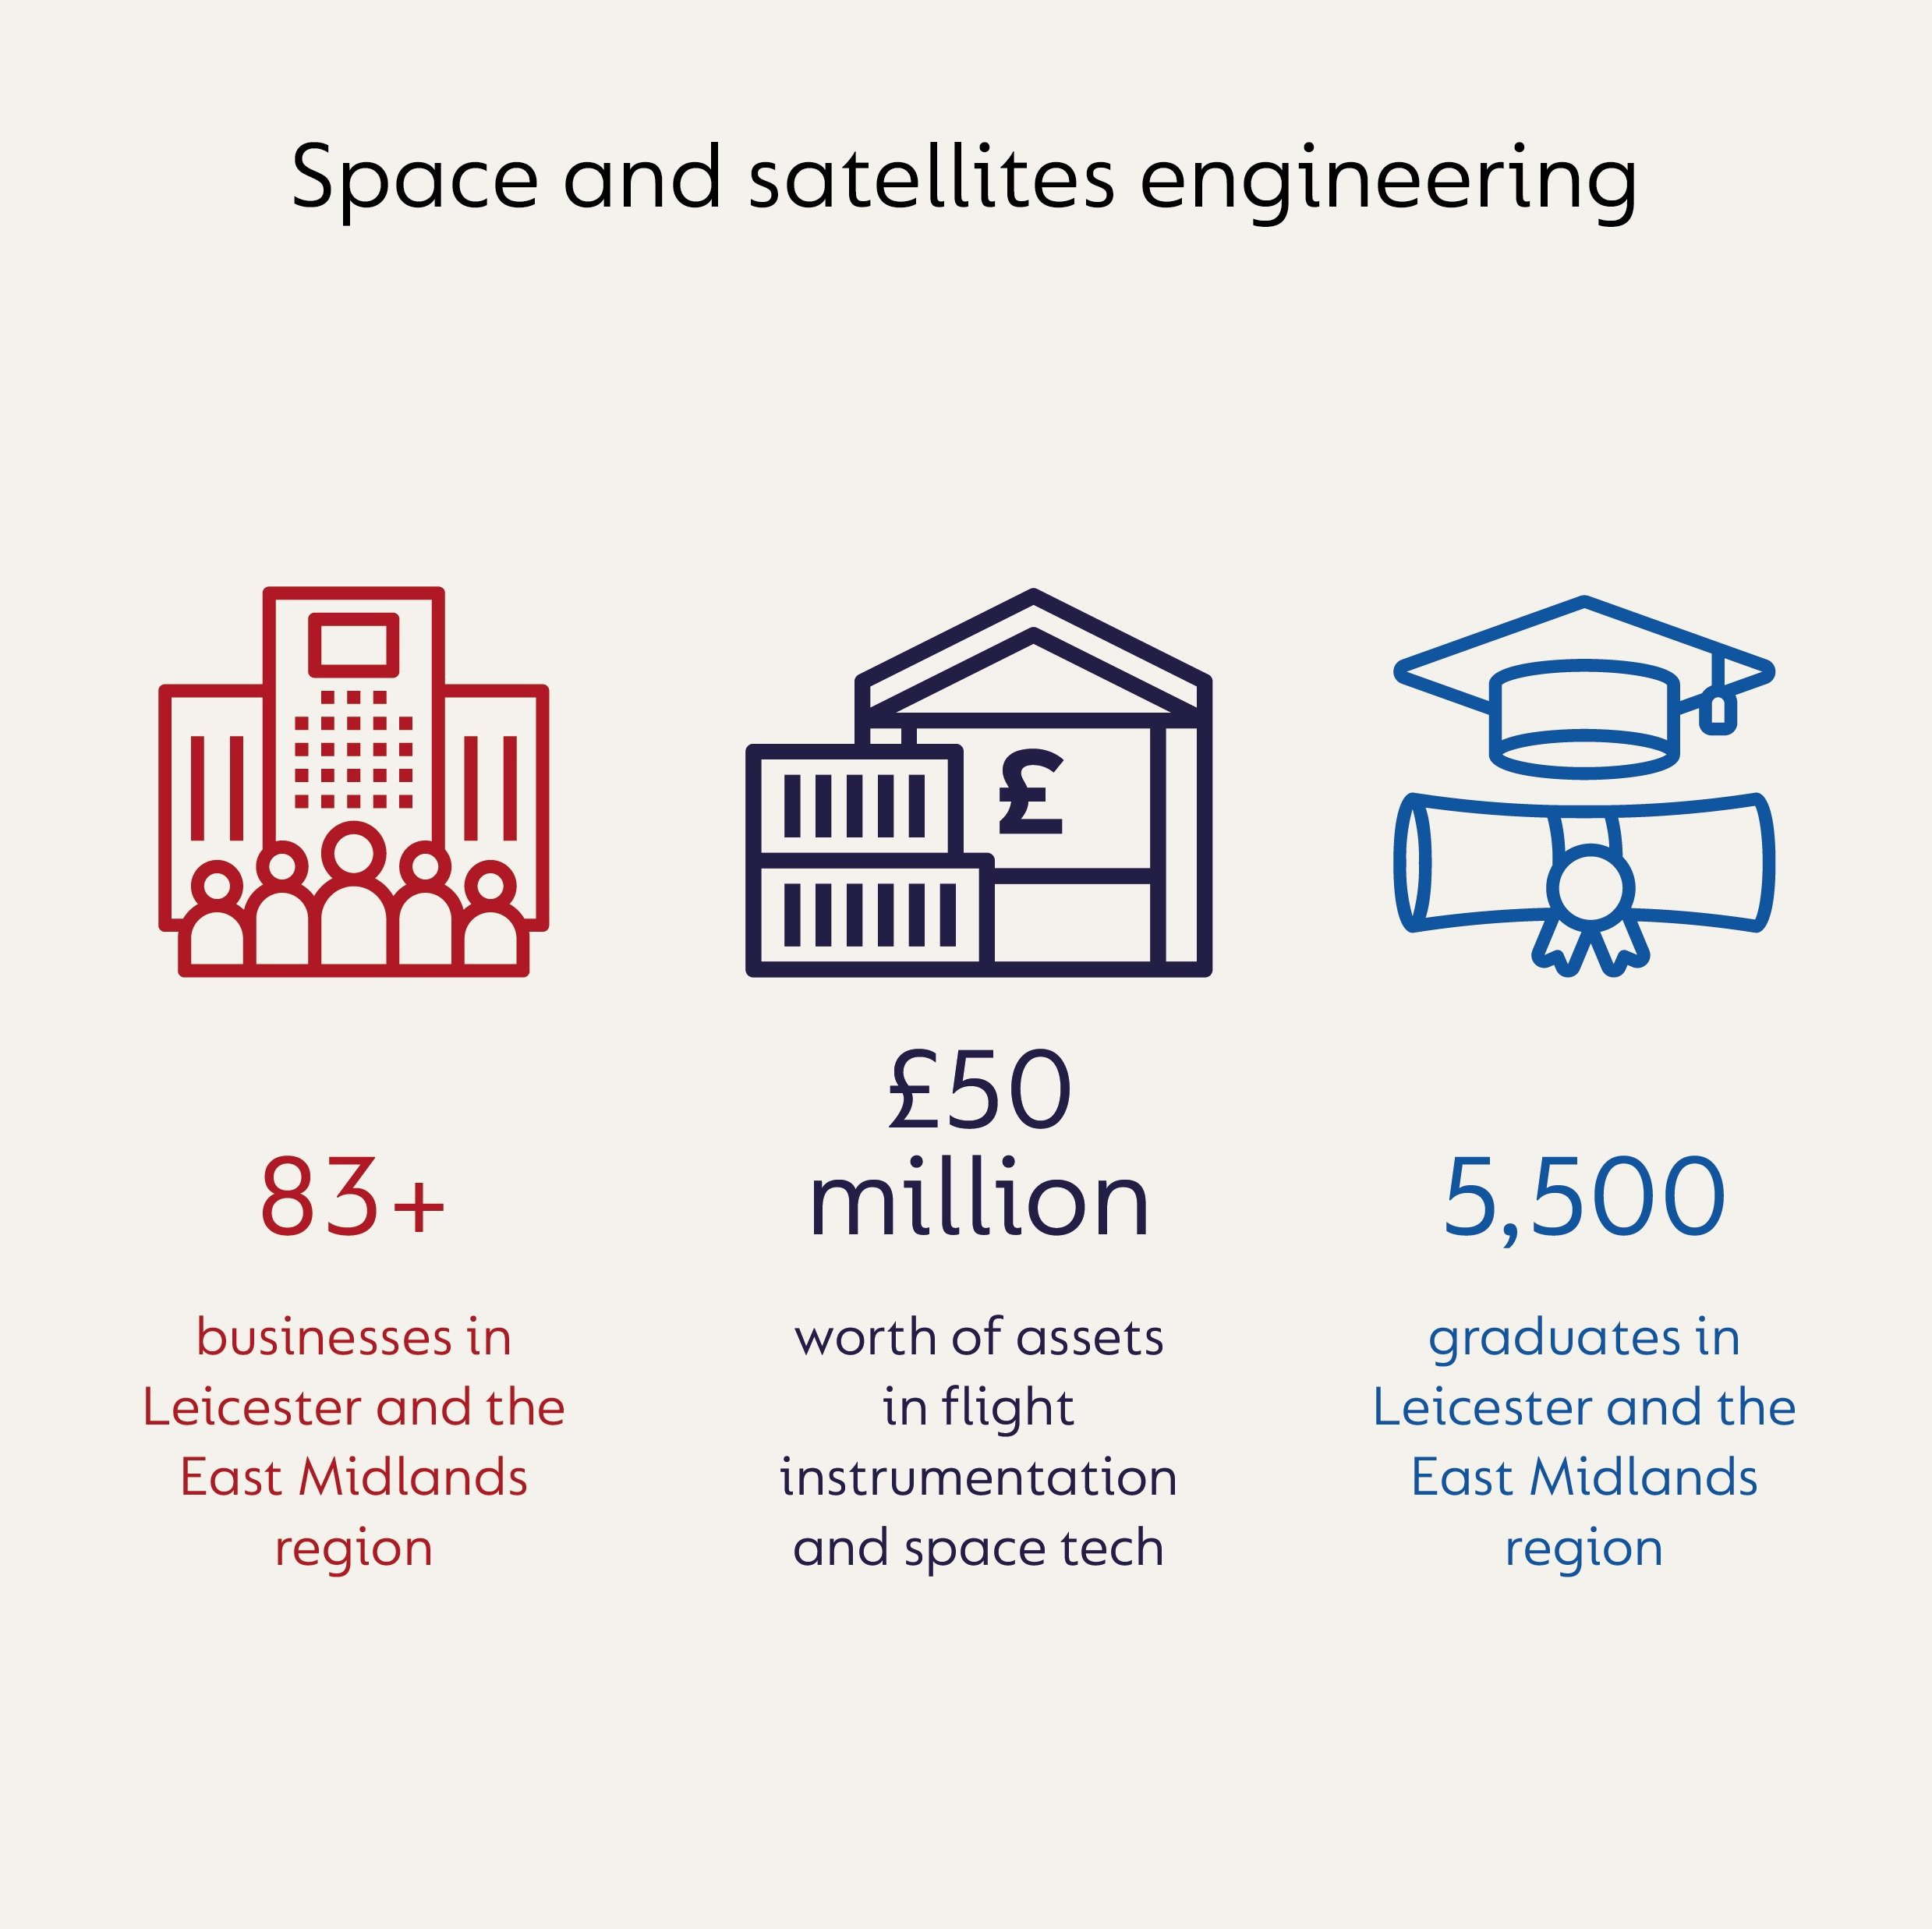 Infographic showing the information that in space and satellites engineering there is £50 million worth of assets in instrumentation and space tech. In the Leicester and East Midlands region there are over 83 businesses and 5,500 graduates.